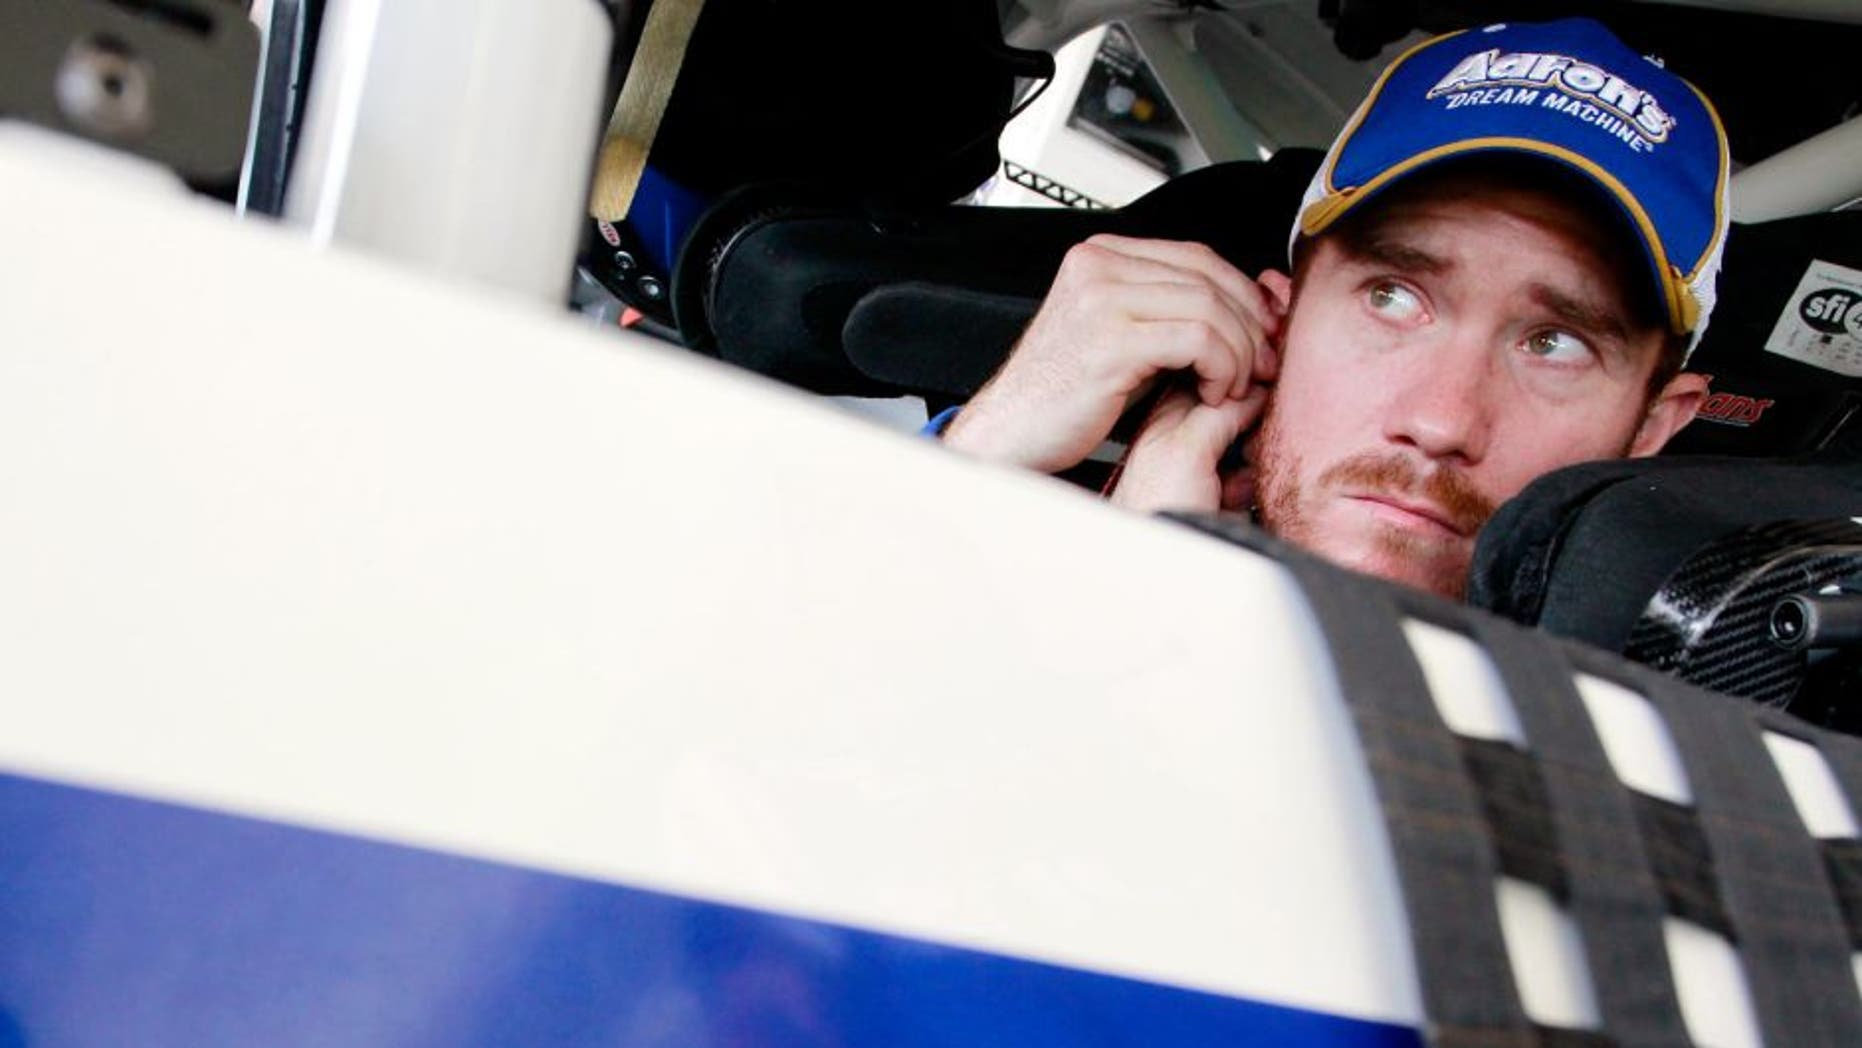 HOMESTEAD, FL - NOVEMBER 15: Brian Vickers, driver of the #55 Aaron's Dream Machine Toyota, sits in his car in the garage area during practice for the NASCAR Sprint Cup Series Ford EcoBoost 400 at Homestead-Miami Speedway on November 15, 2014 in Homestead, Florida. (Photo by Brian Lawdermilk/Getty Images)